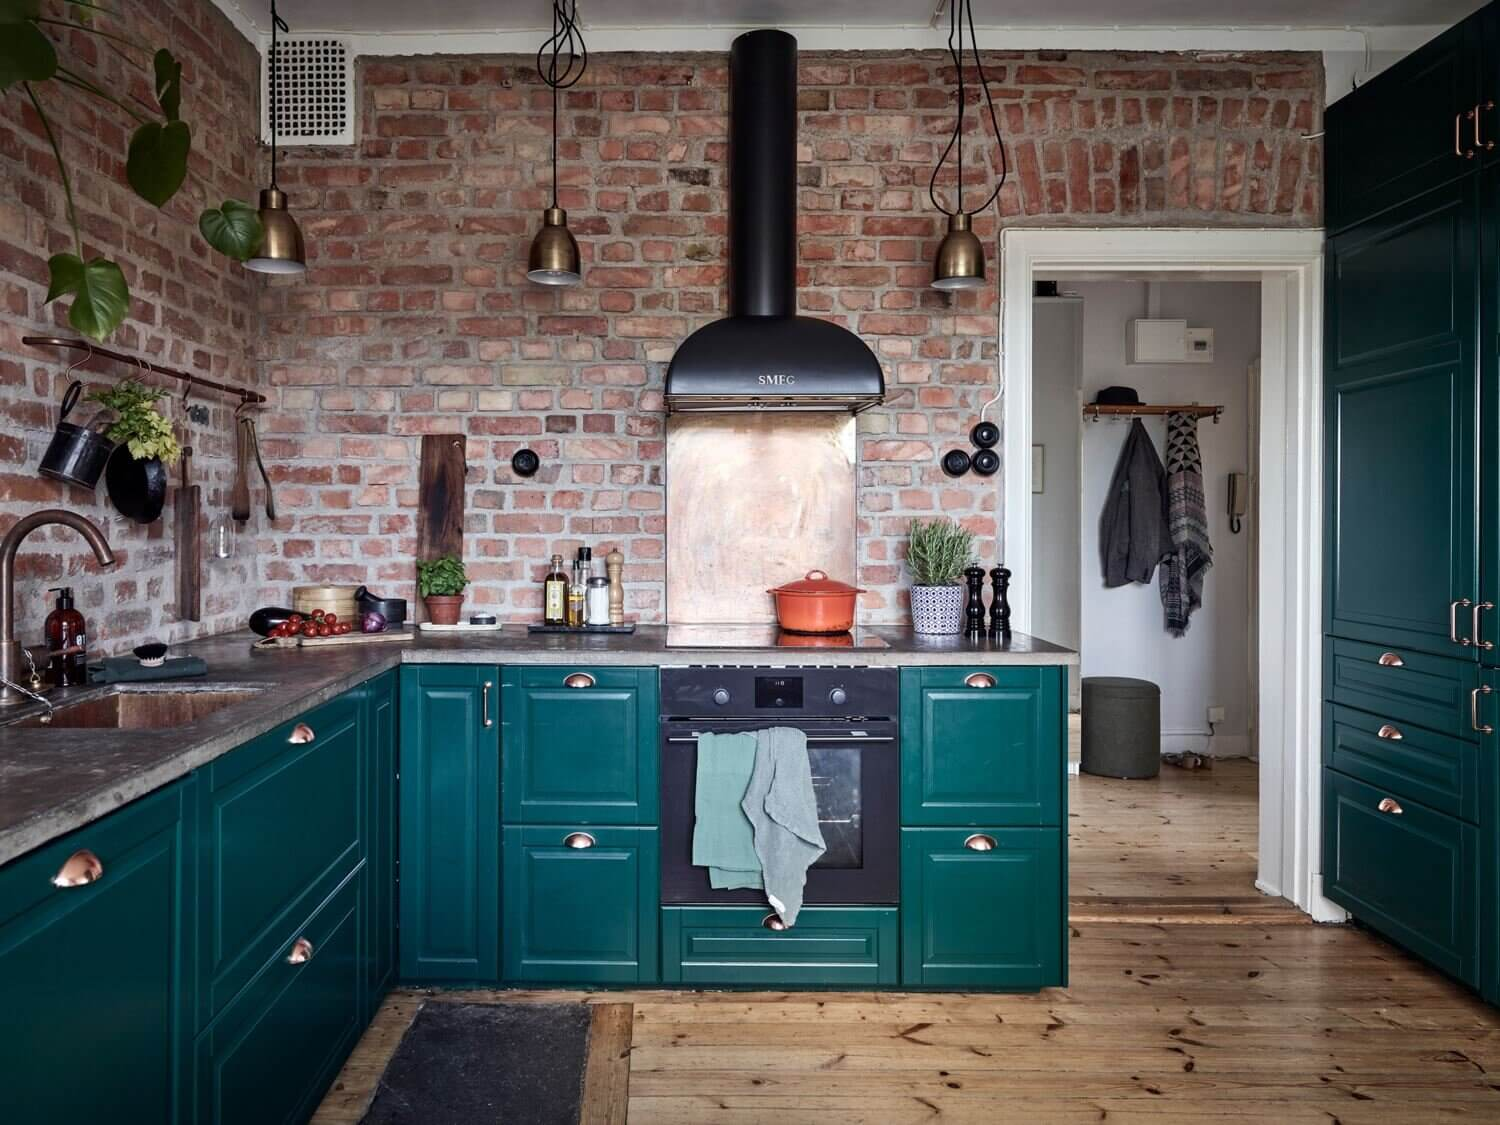 A Green Kitchen with Exposed Brick in a Scandi Apartment